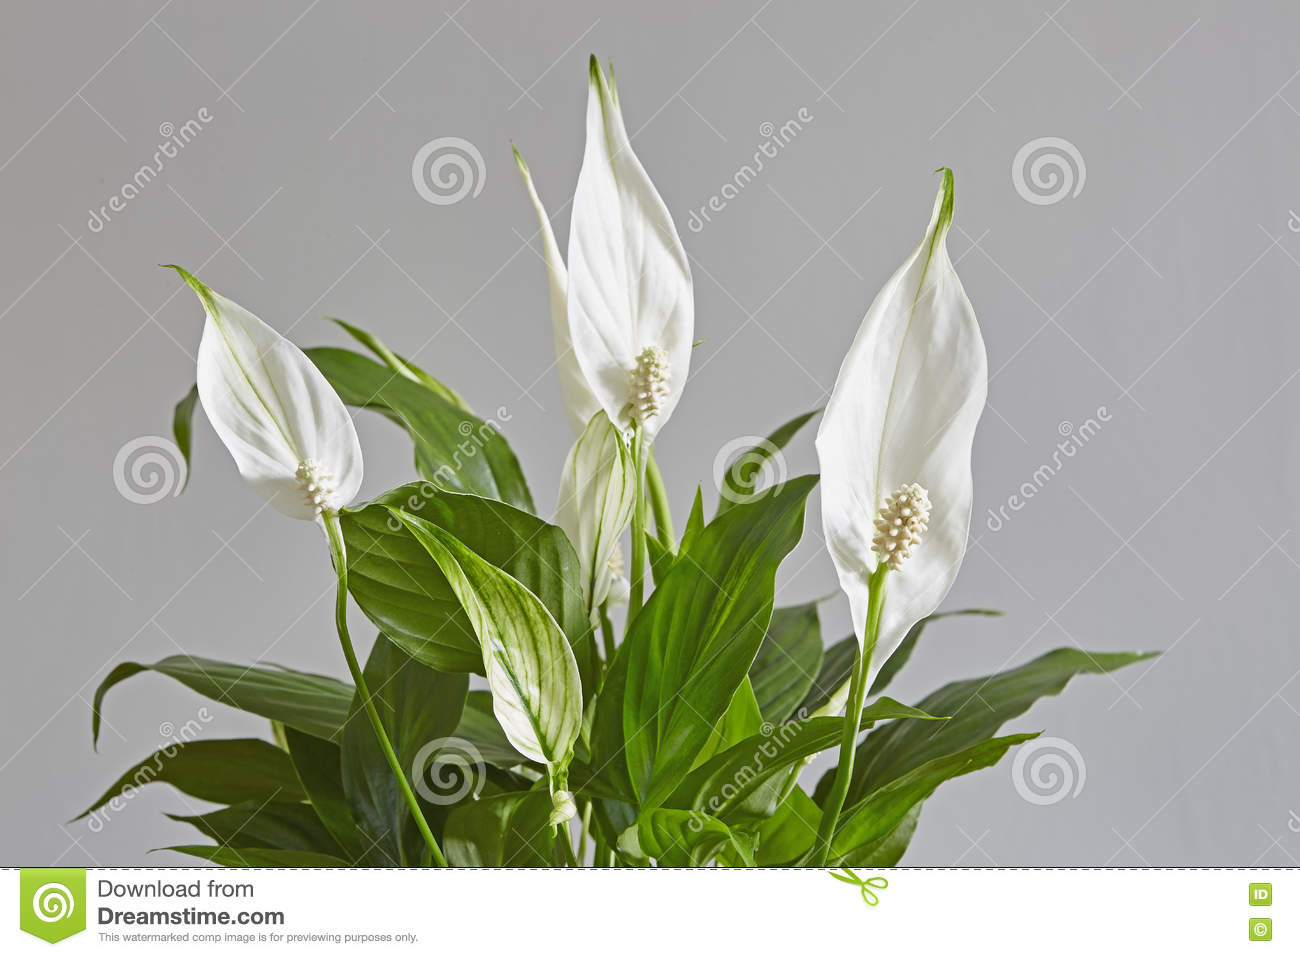 Spathiphyllumpeace lily stock photo image of color 80021998 download comp izmirmasajfo